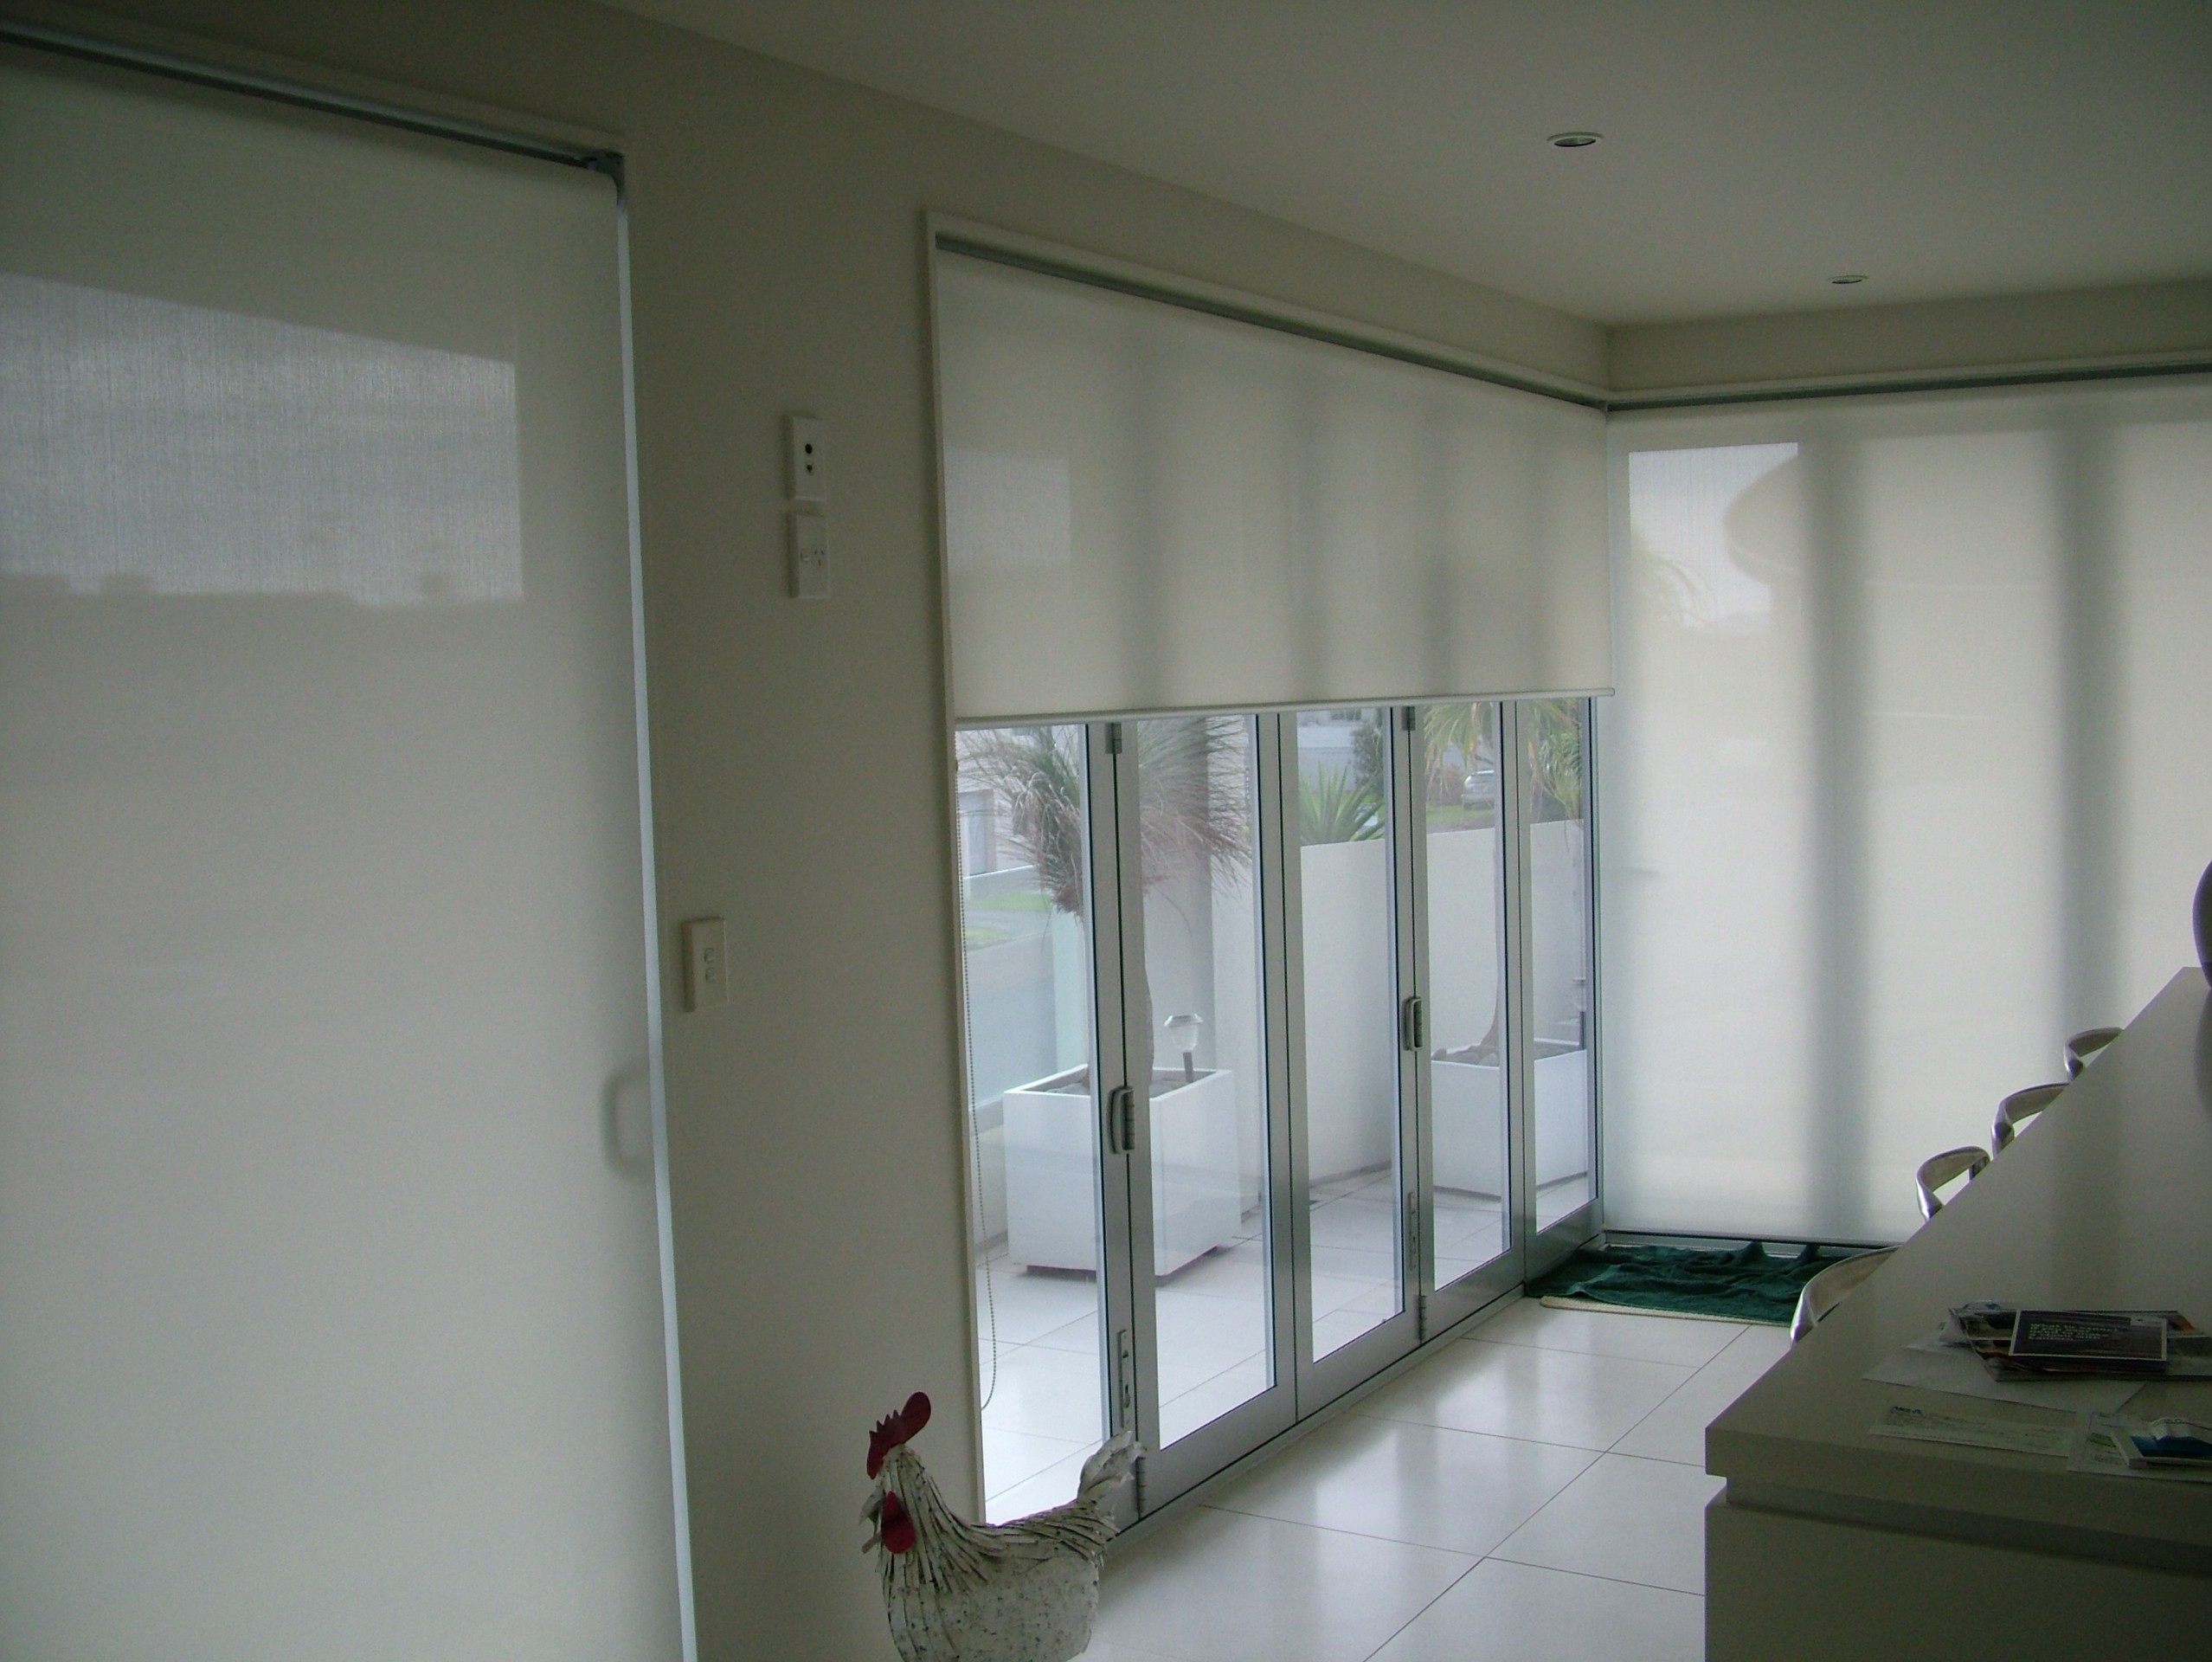 Roller, Verosol, Silhouette Blinds & Duette Shades | Curtain Clean ...